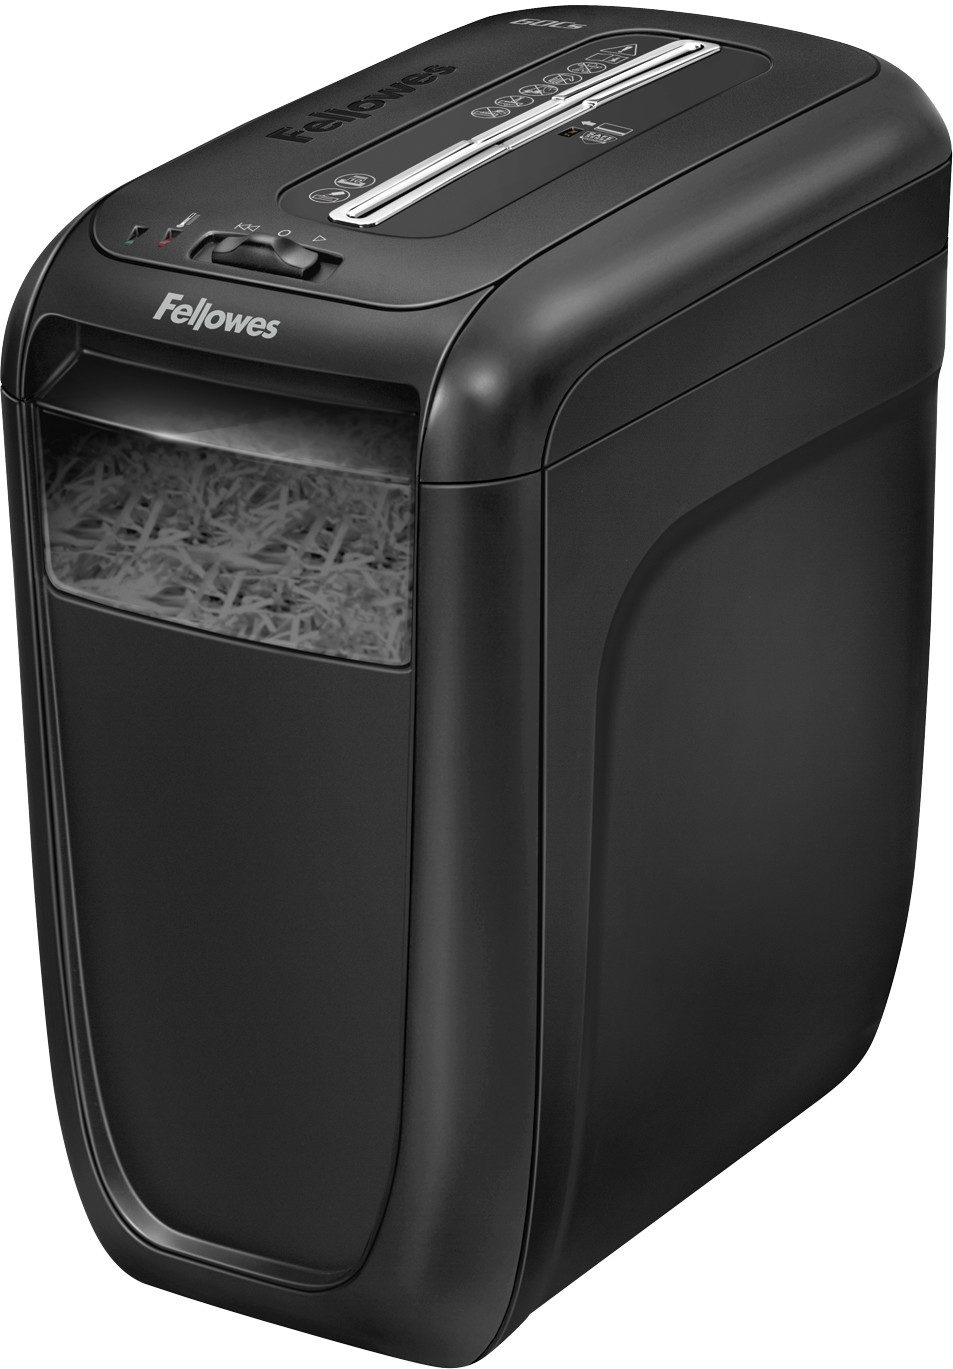 Шредер Fellowes FS-46061